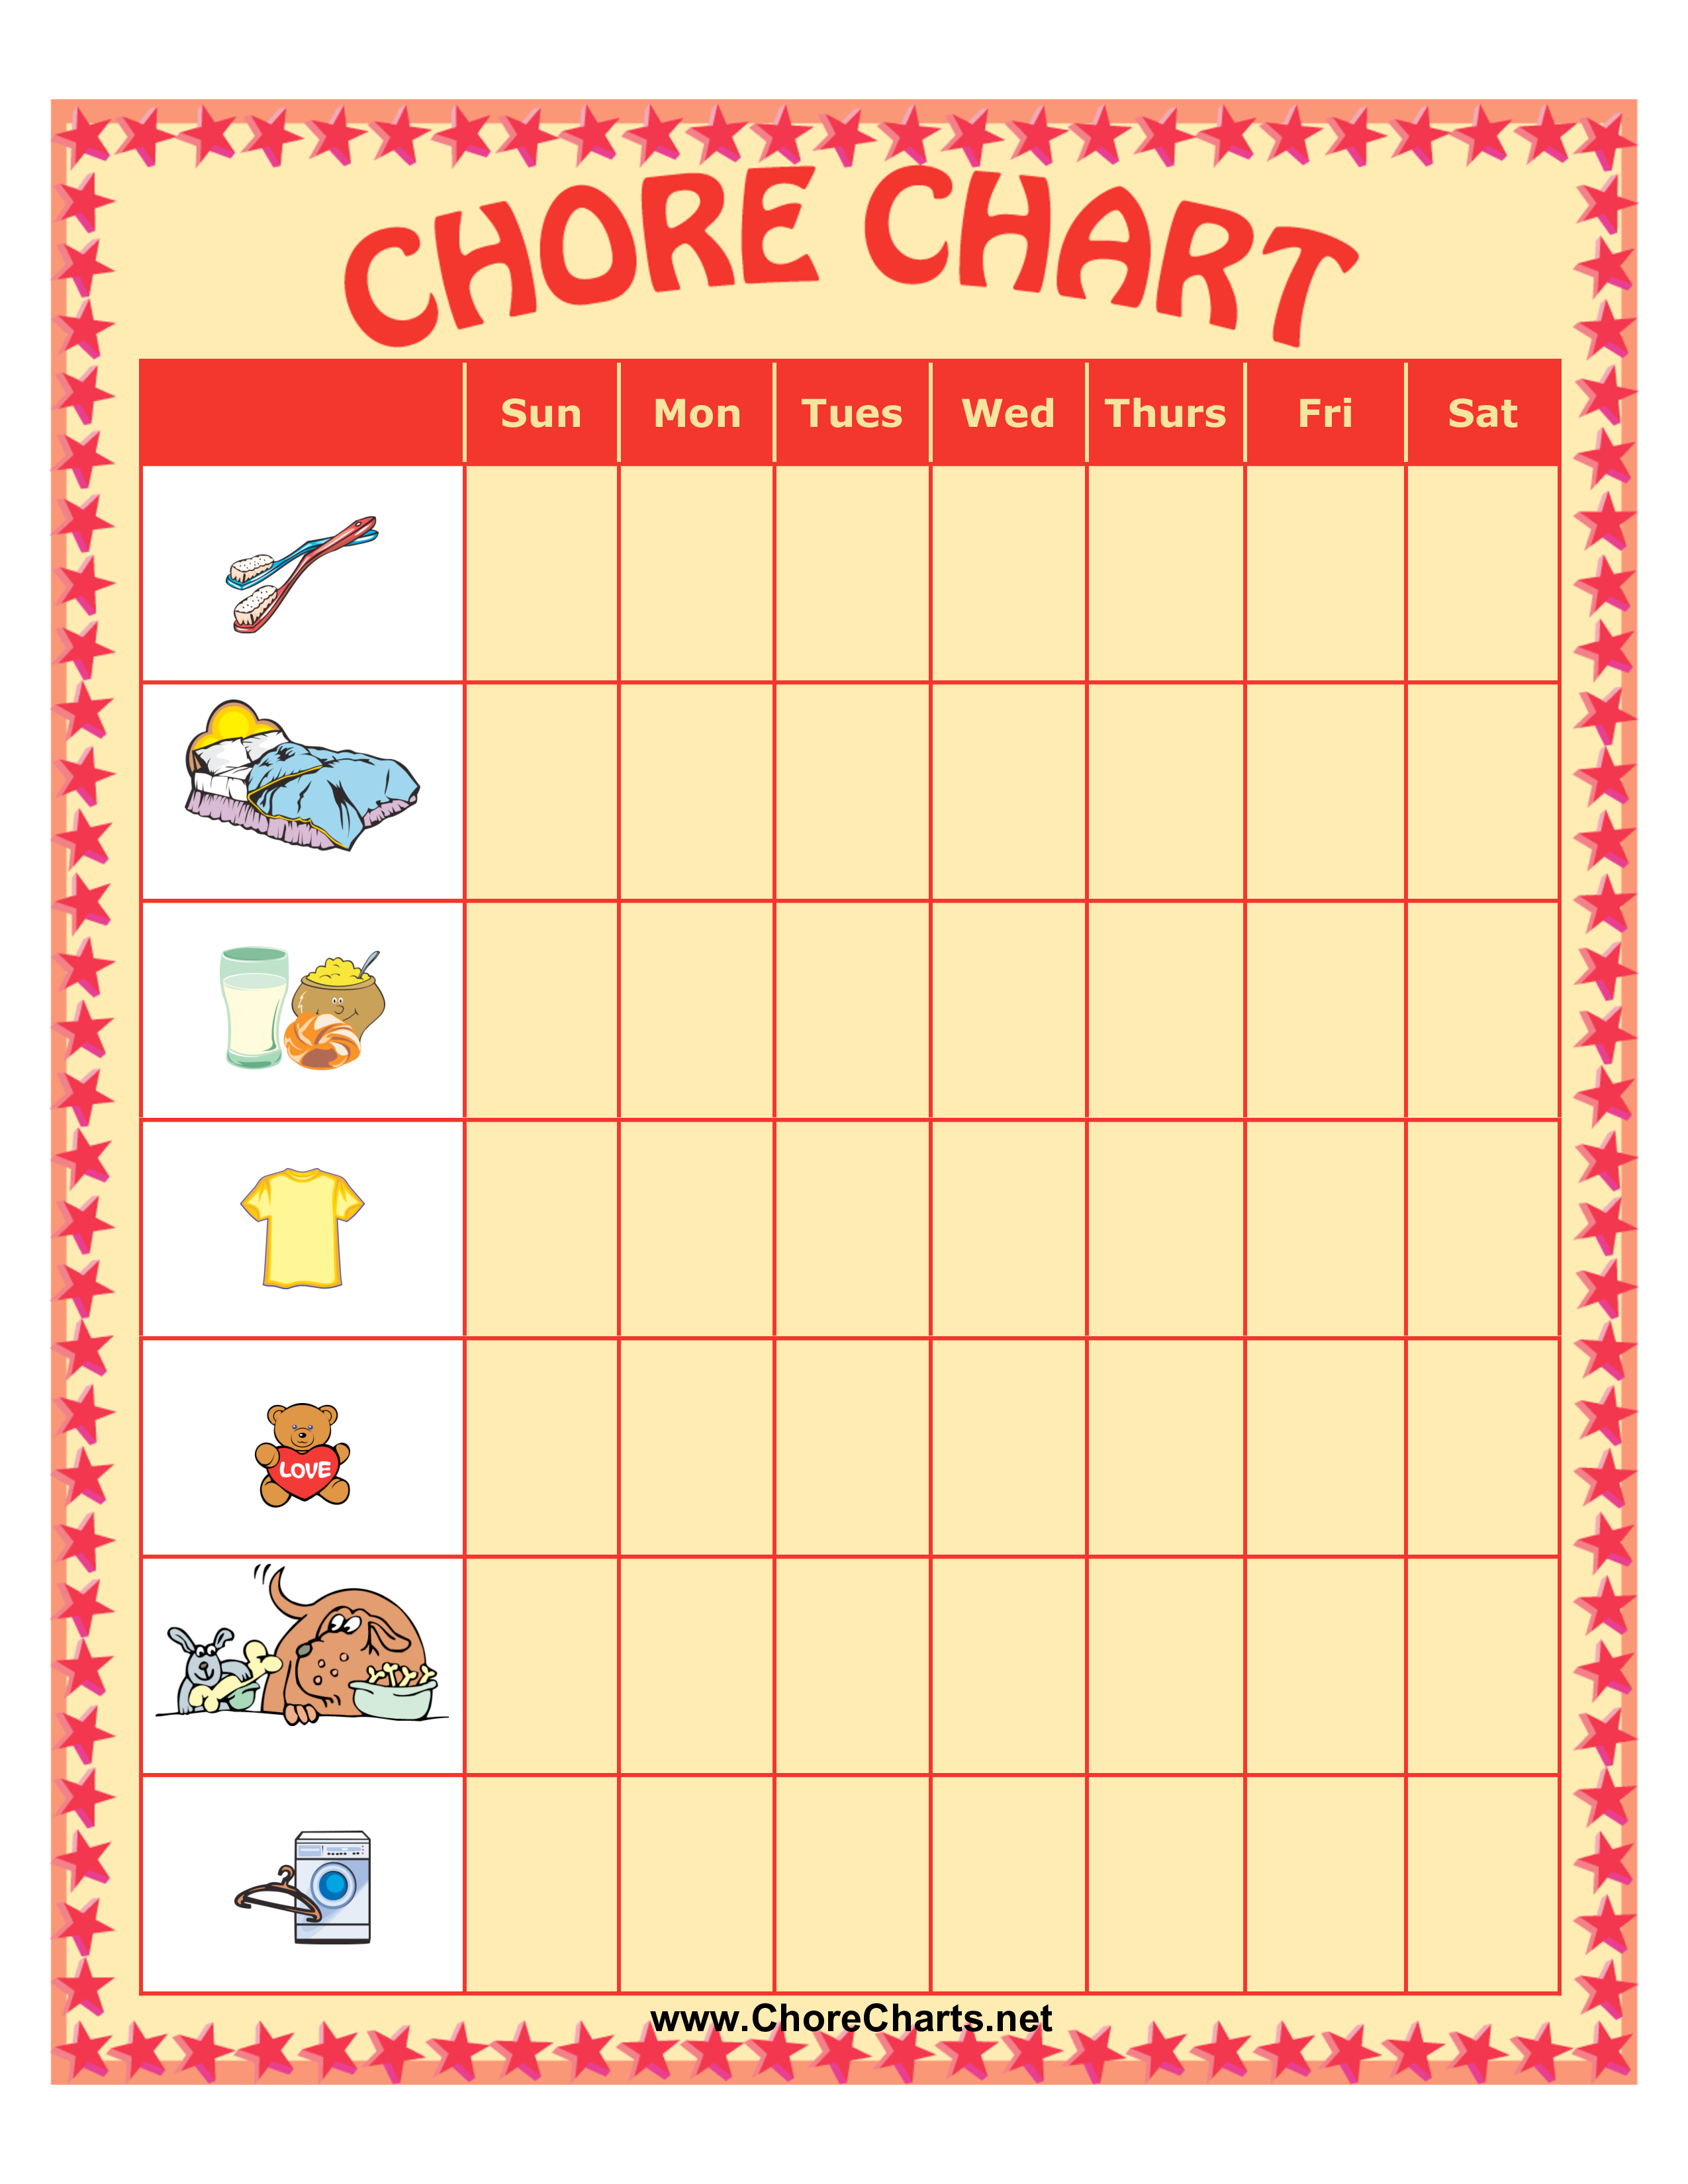 Free Weekly Chore Chart For Kids Templates At Allbusinesstemplates Com